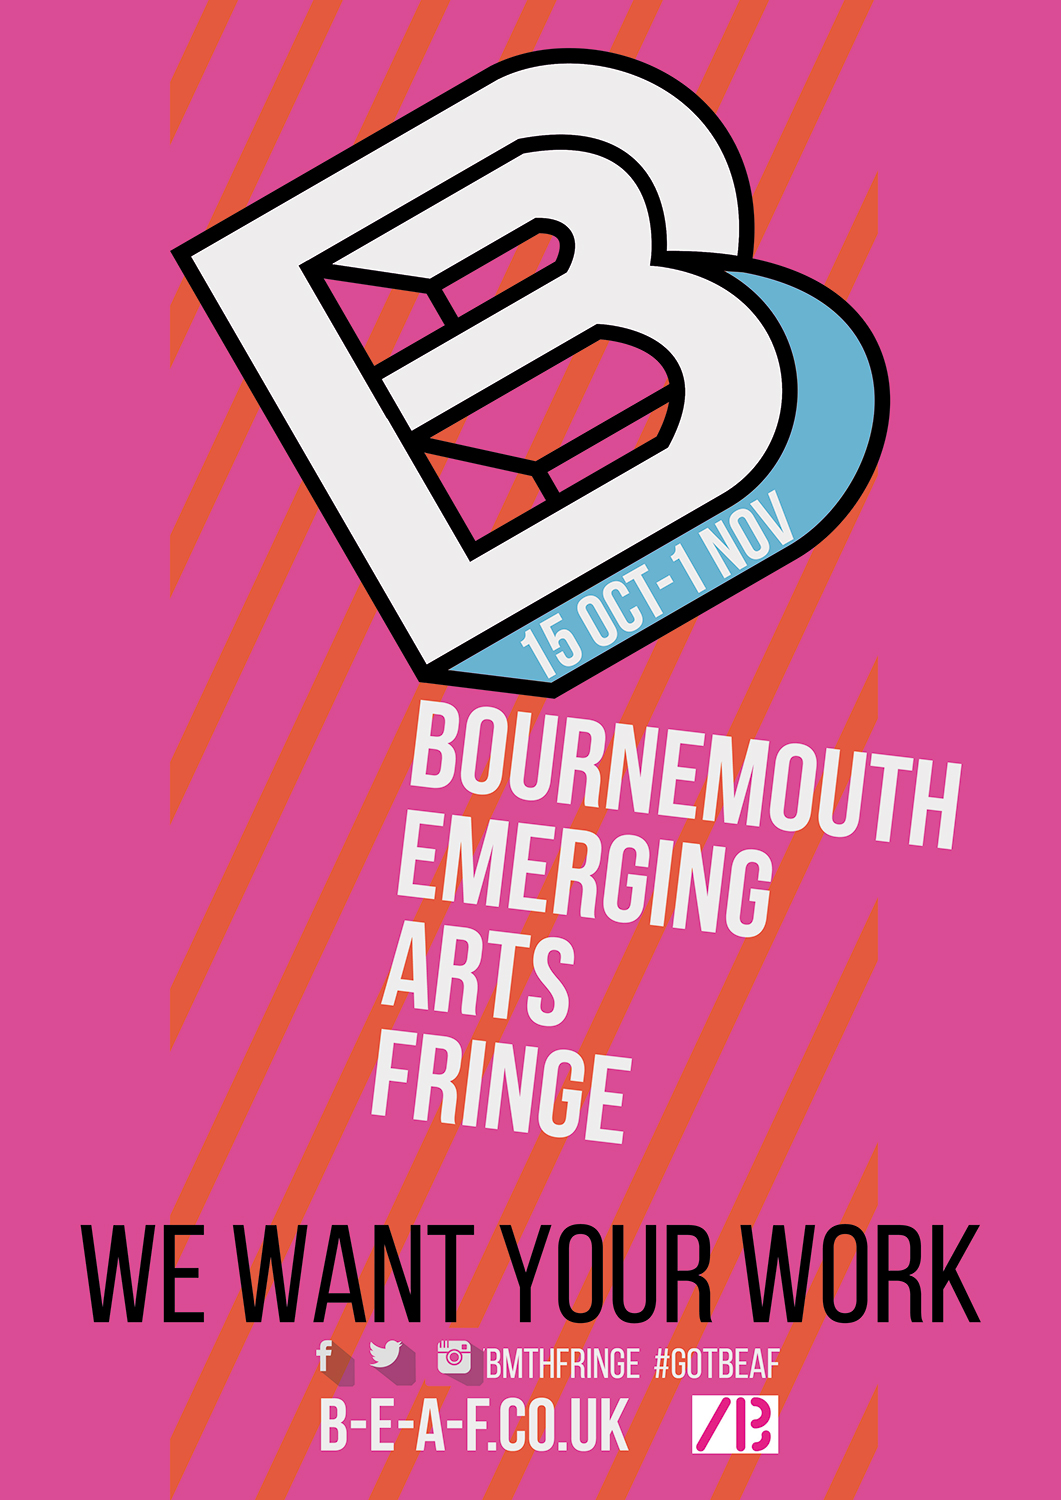 Branding and logo design. Promotional poster for Bournemouth Emerging Arts Fringe festival, 2015.